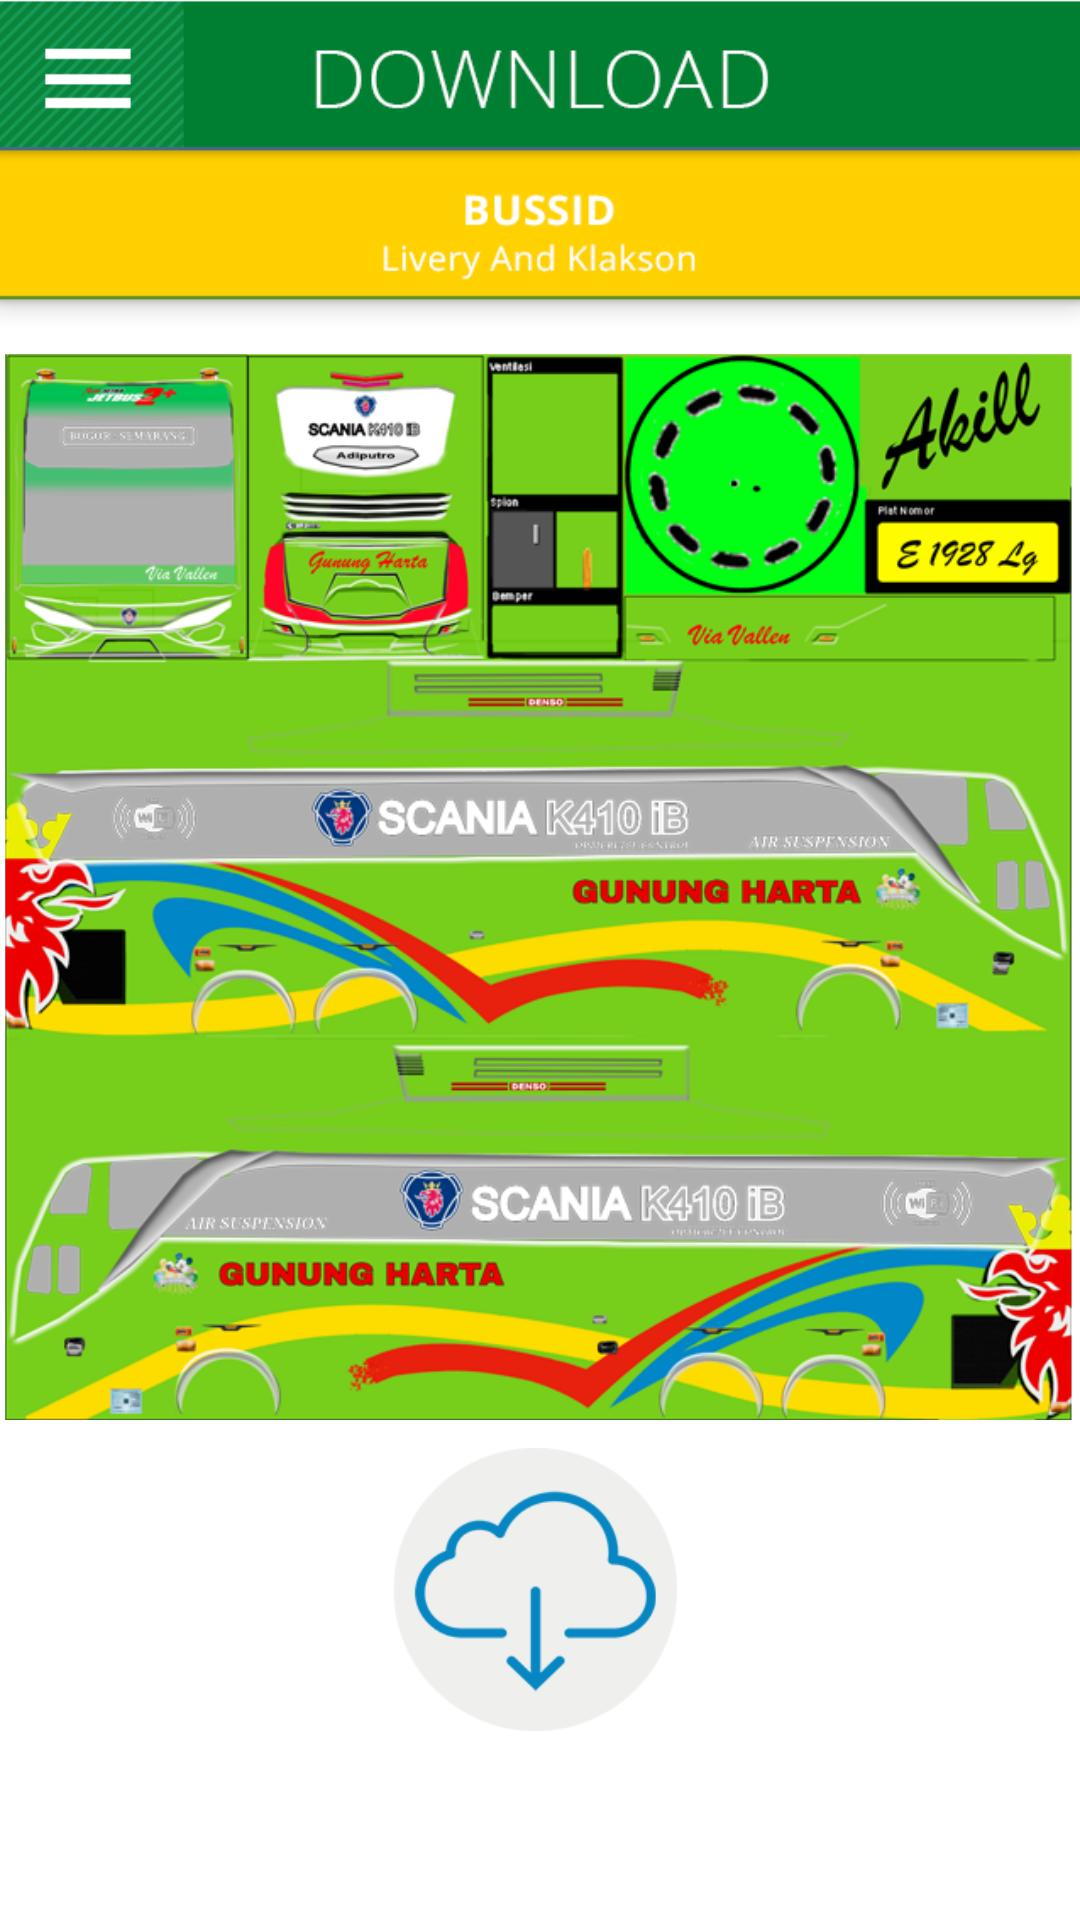 Livery Bus Gunung Harta For Android Apk Download